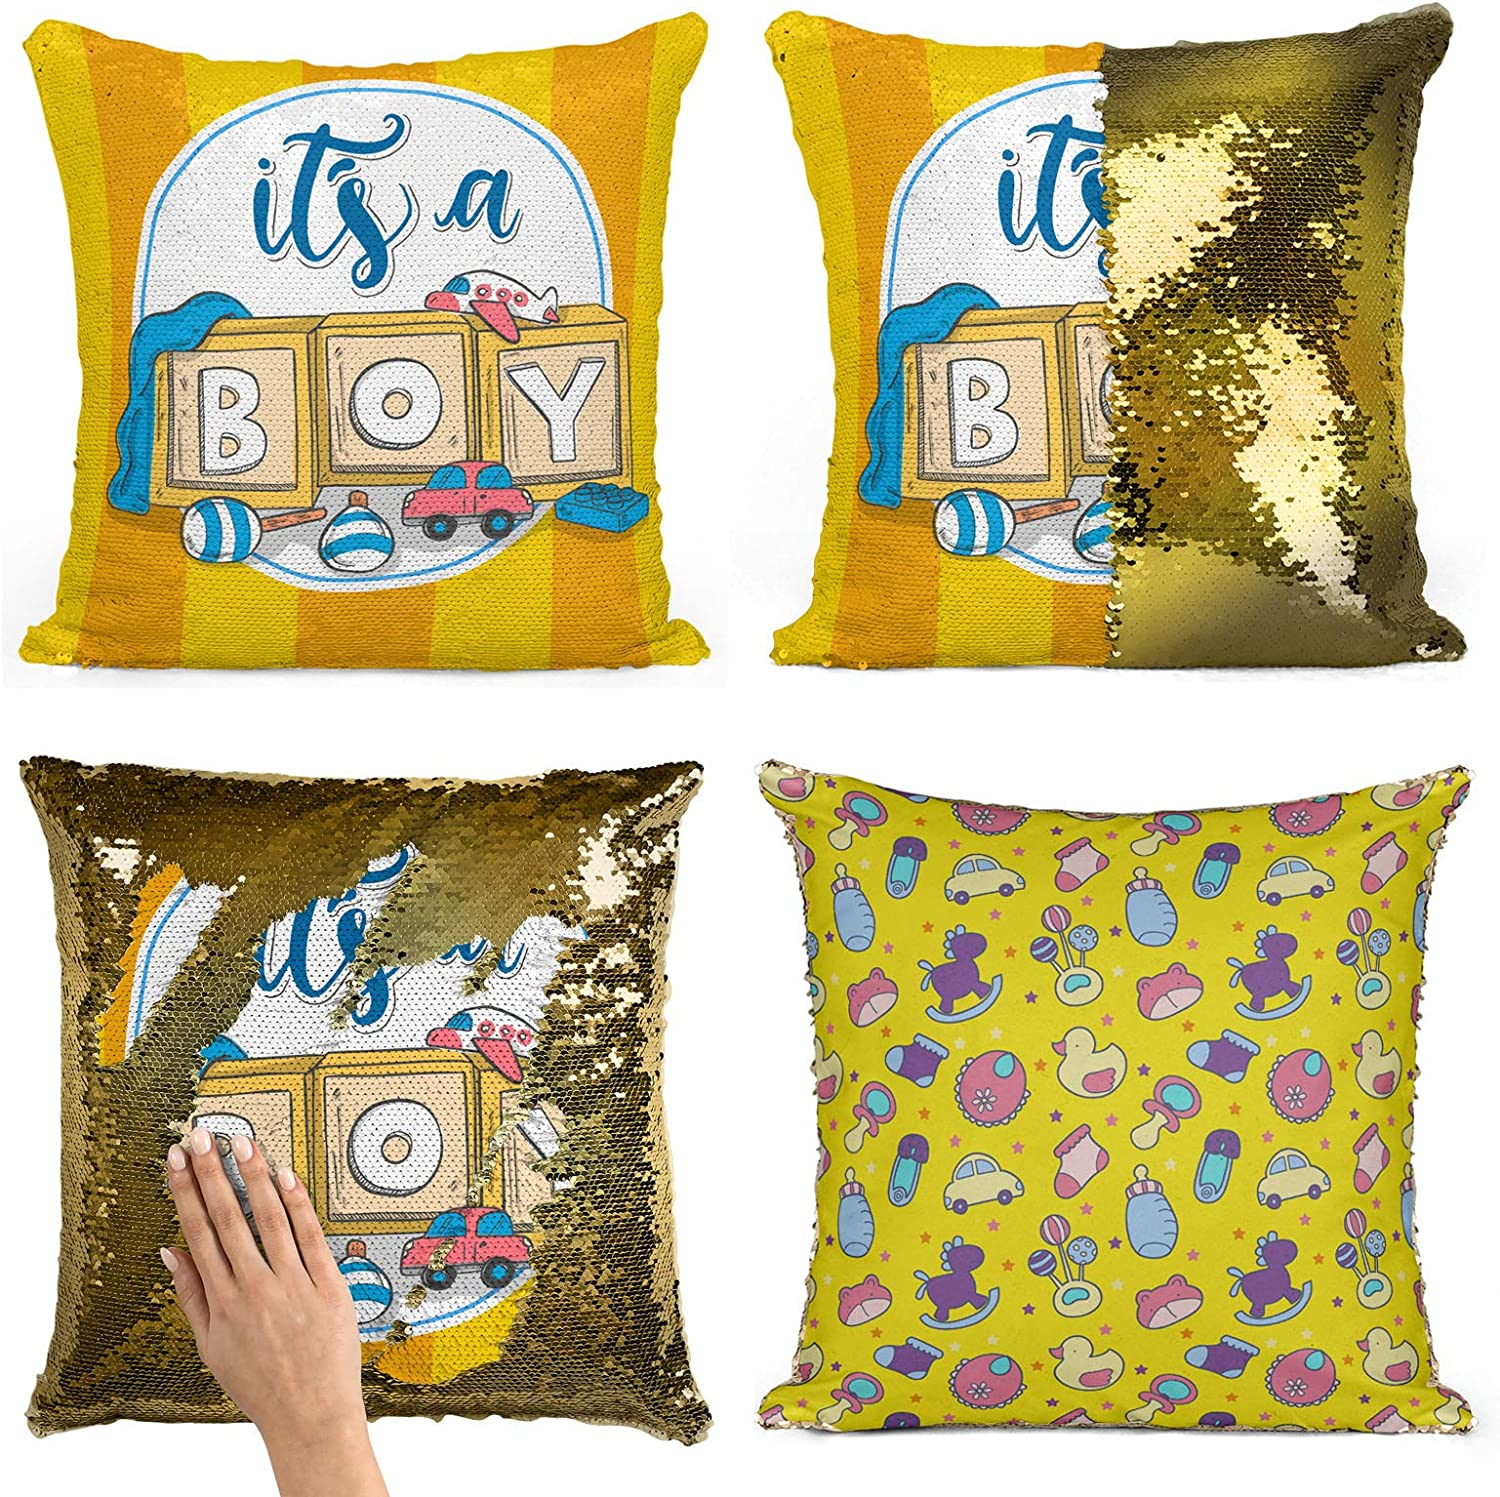 Bad Bananas Reversible Sequin Gender Reveal Pillow Boy Great For Baby Showers And Parties Male Boy Gender Reveal Gift Home Kitchen